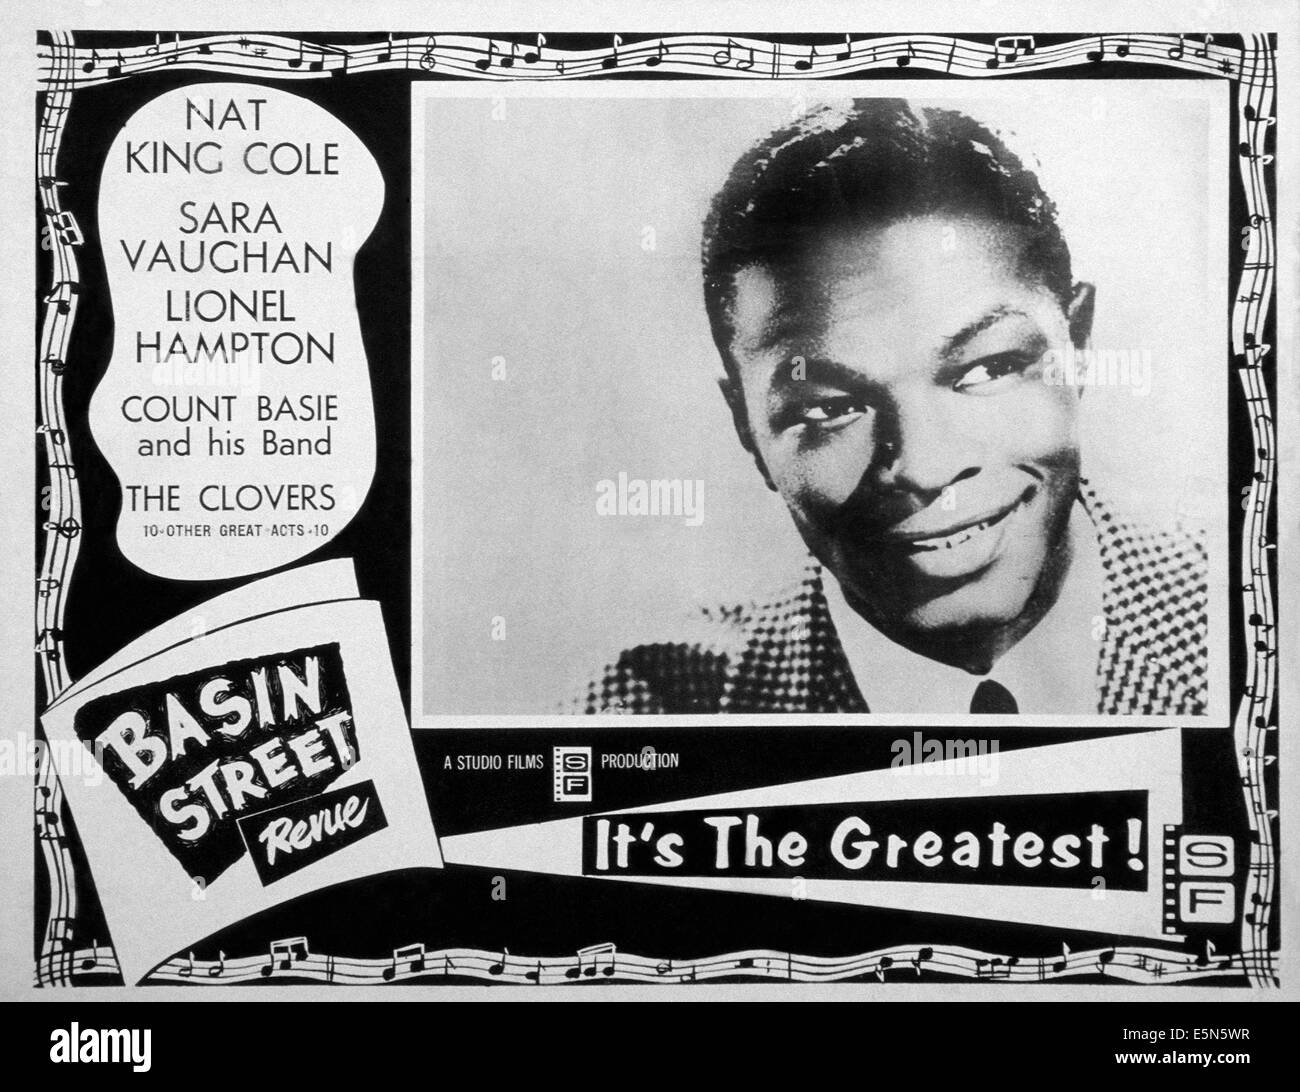 BASIN STREET REVUE, Nat King Cole, 1956 Stock Photo